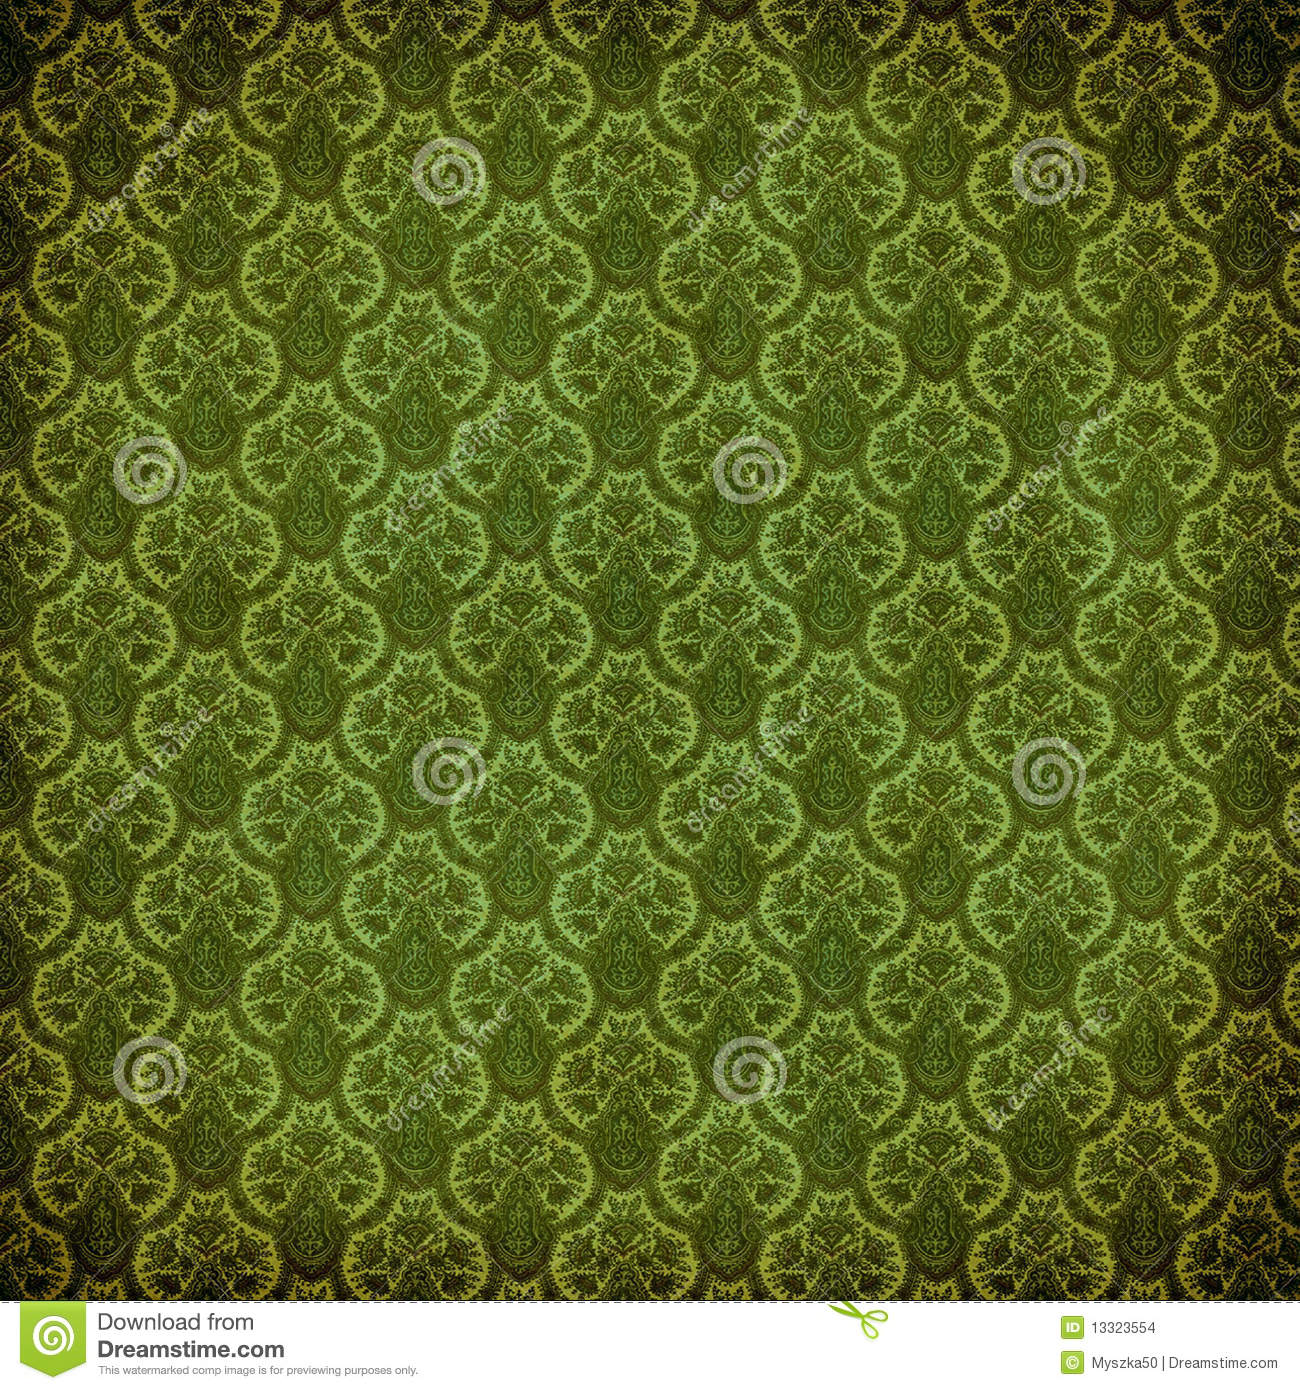 Green victorian damask stock illustration. Image of dirty ...